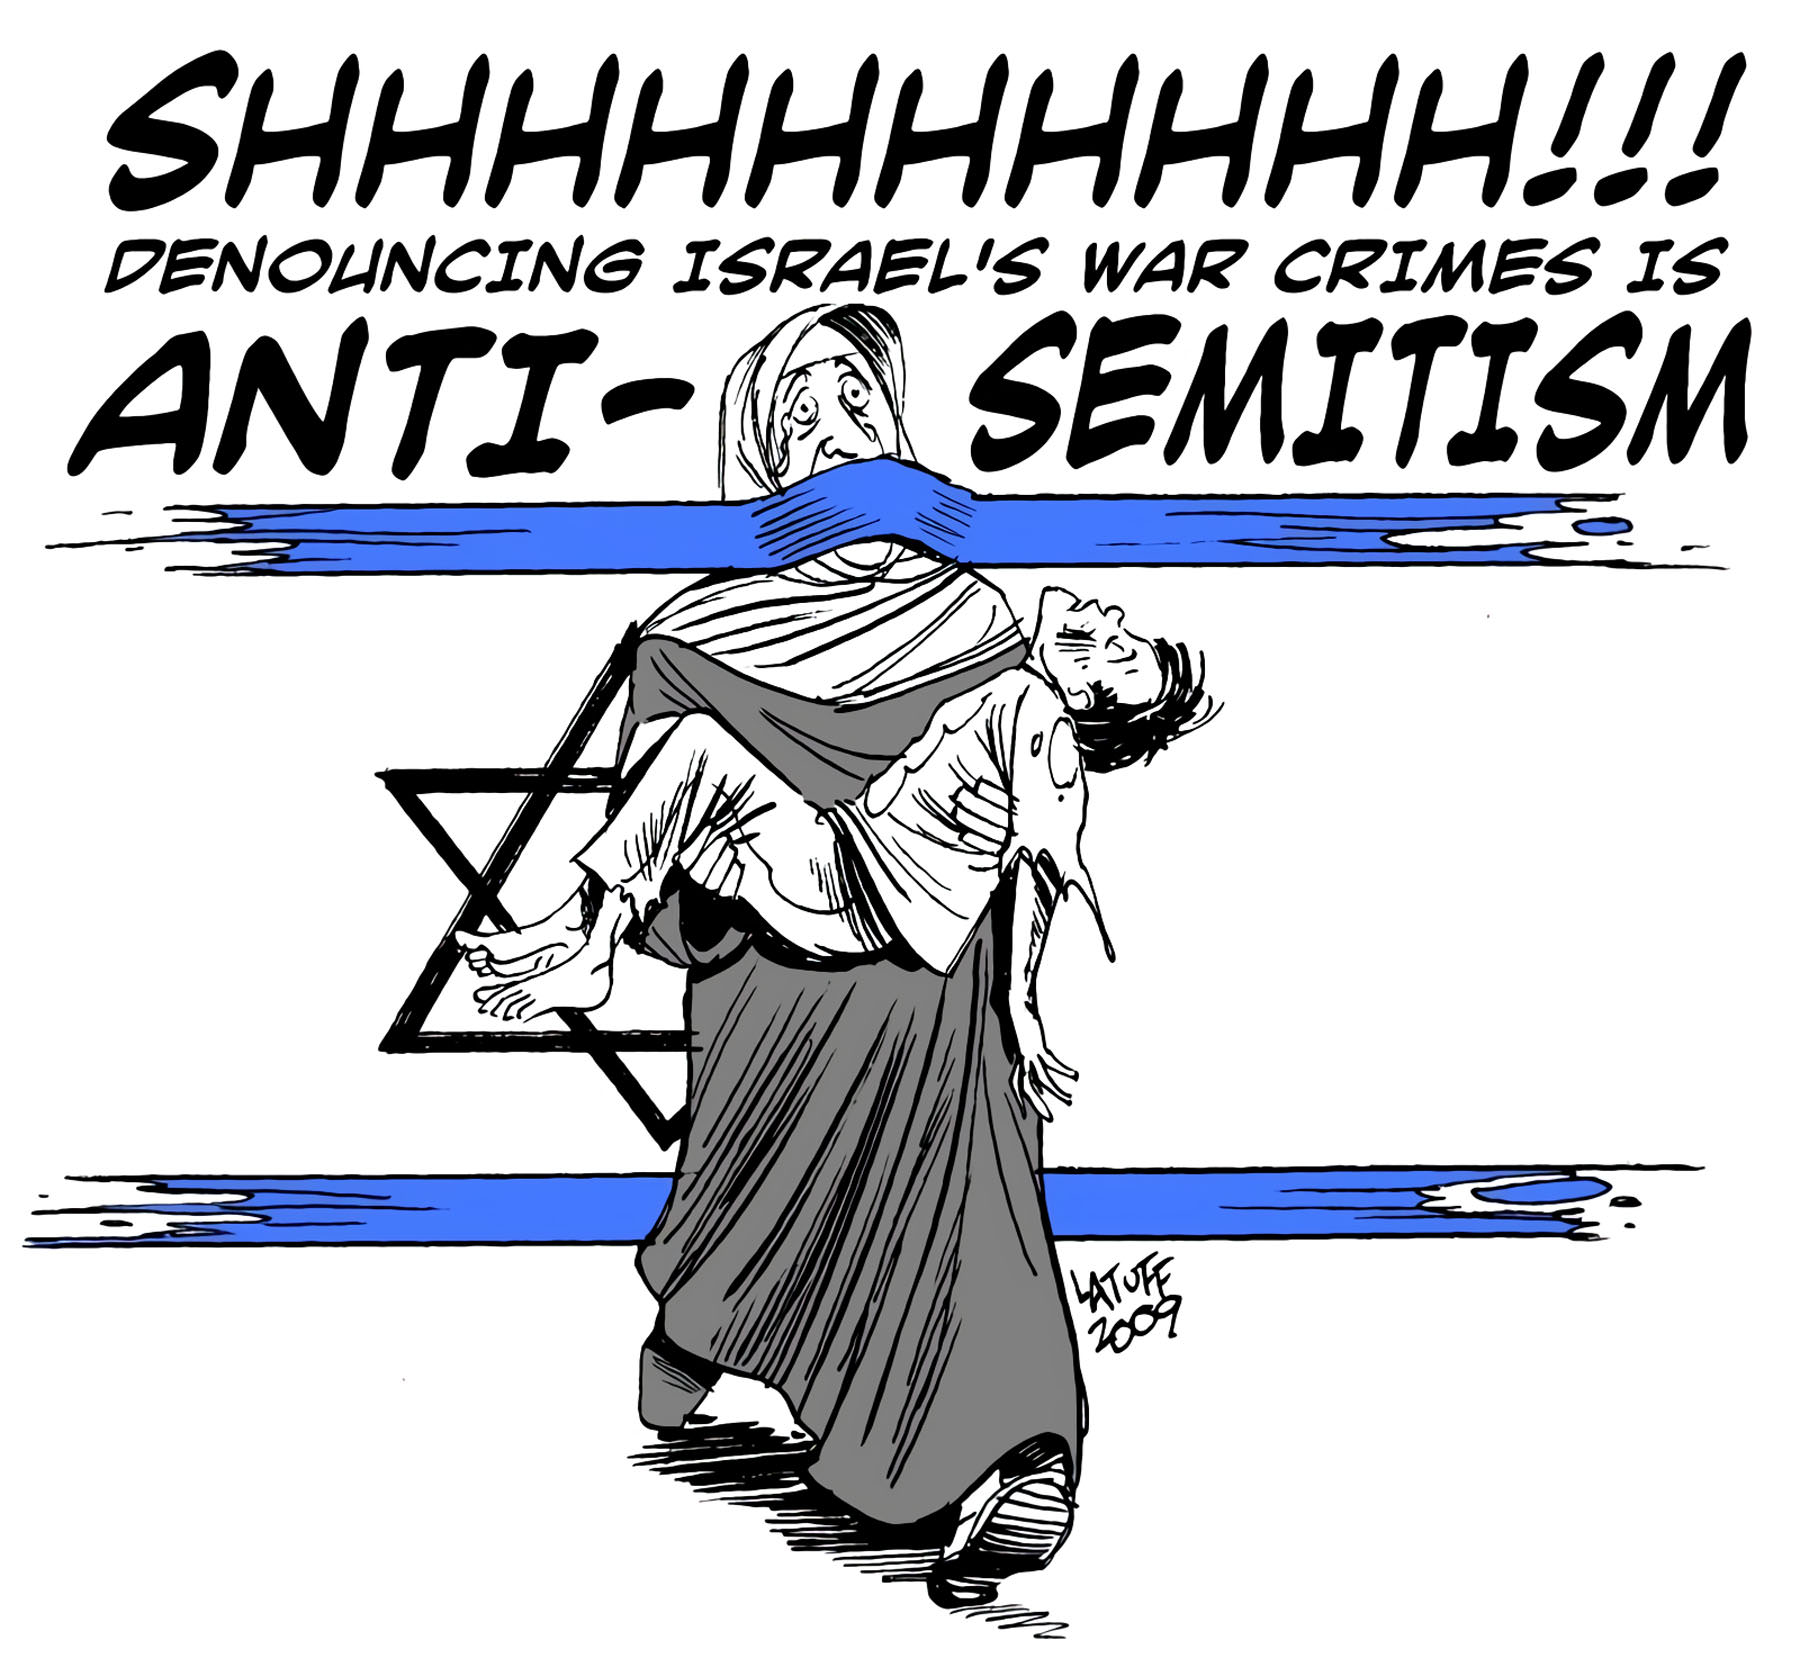 Antisemitism Uncovered: Myth – Anti-Zionism or Criticism of Israel is Never  Antisemitic